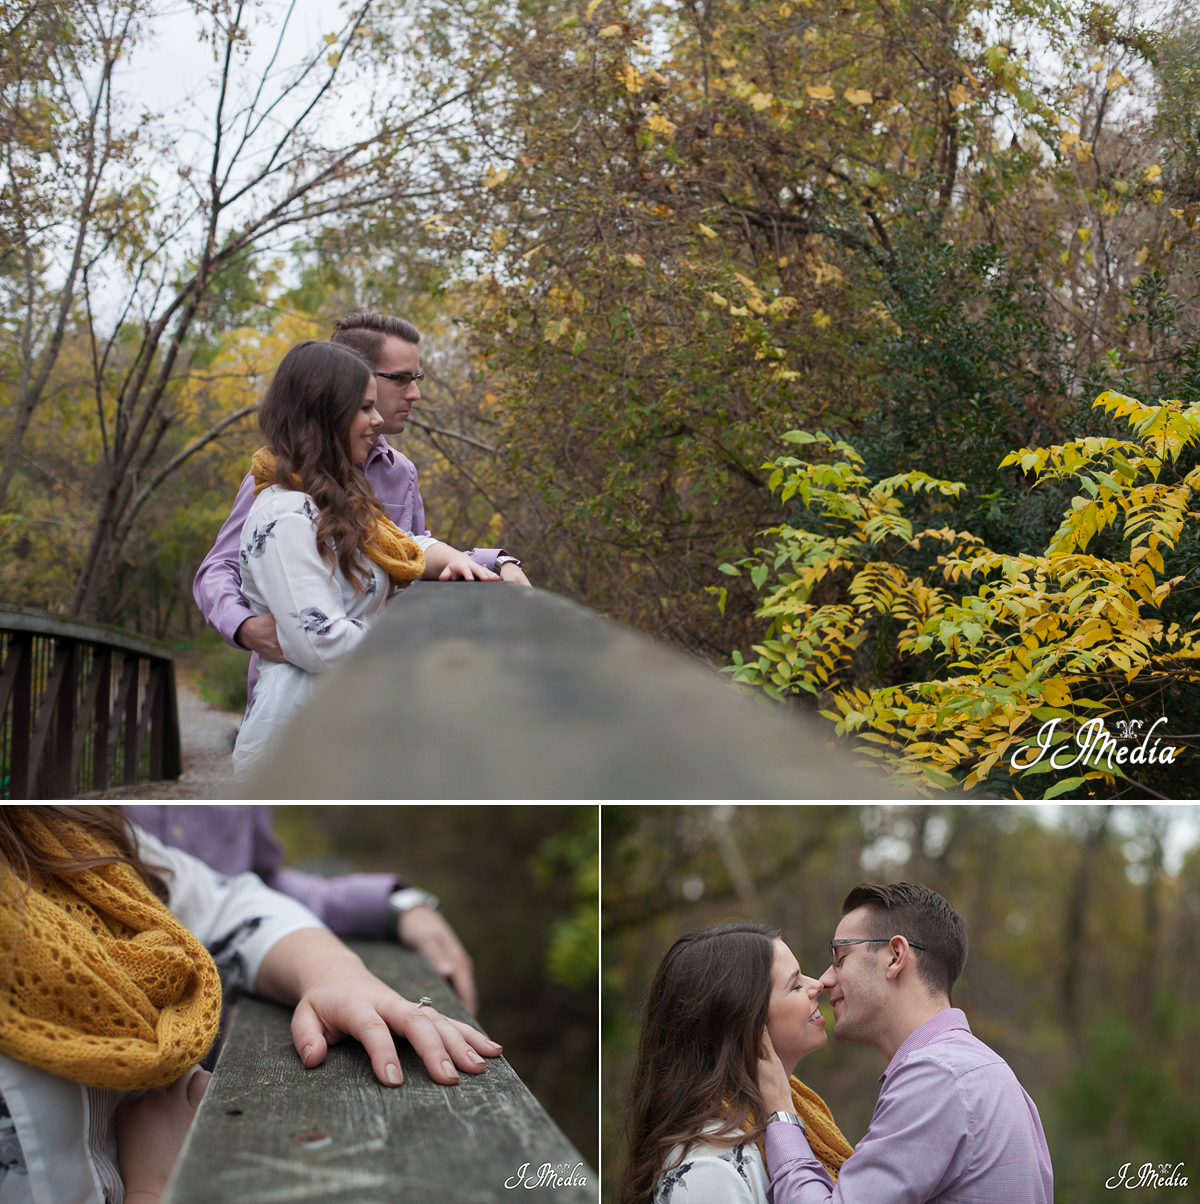 Markham_Unionville__Engagement_Photos_JJMedia-43